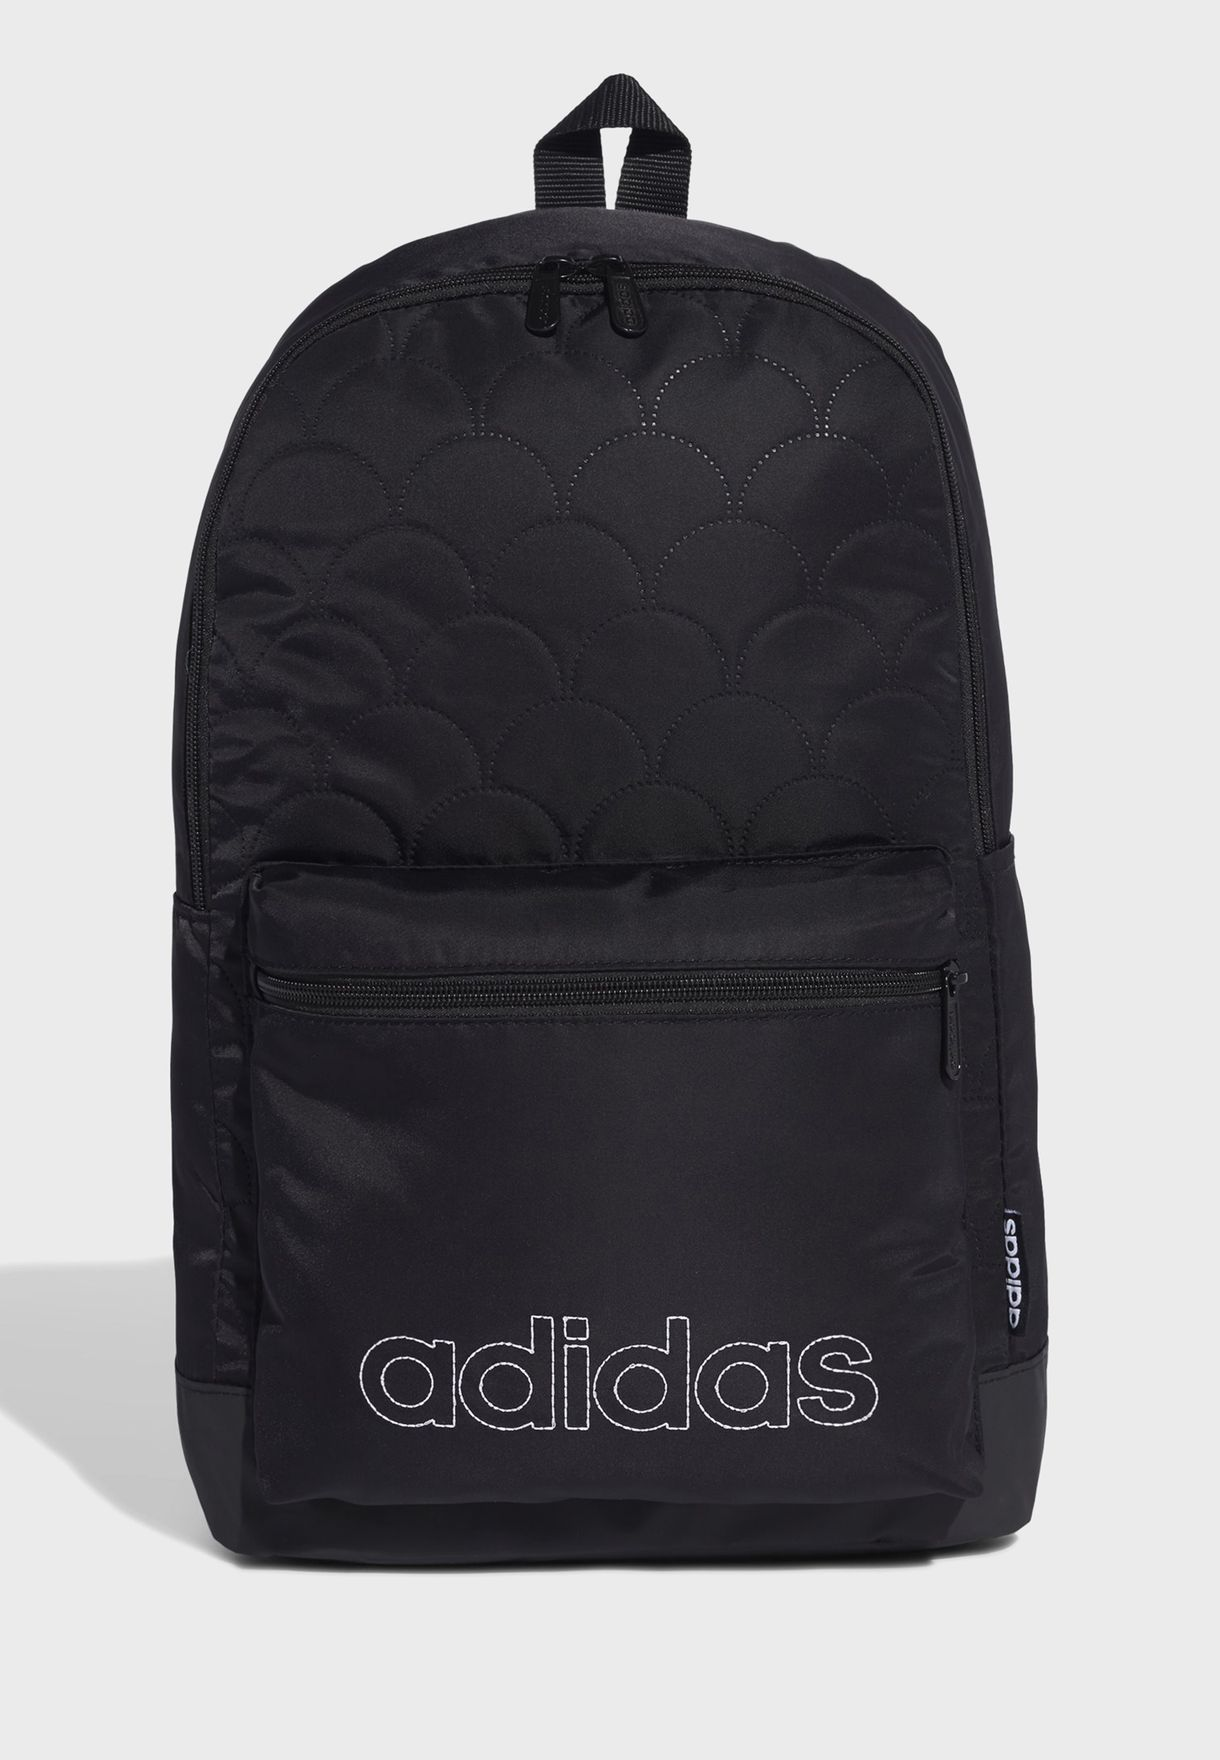 Tailored 4 Her Sports Women's Backpack